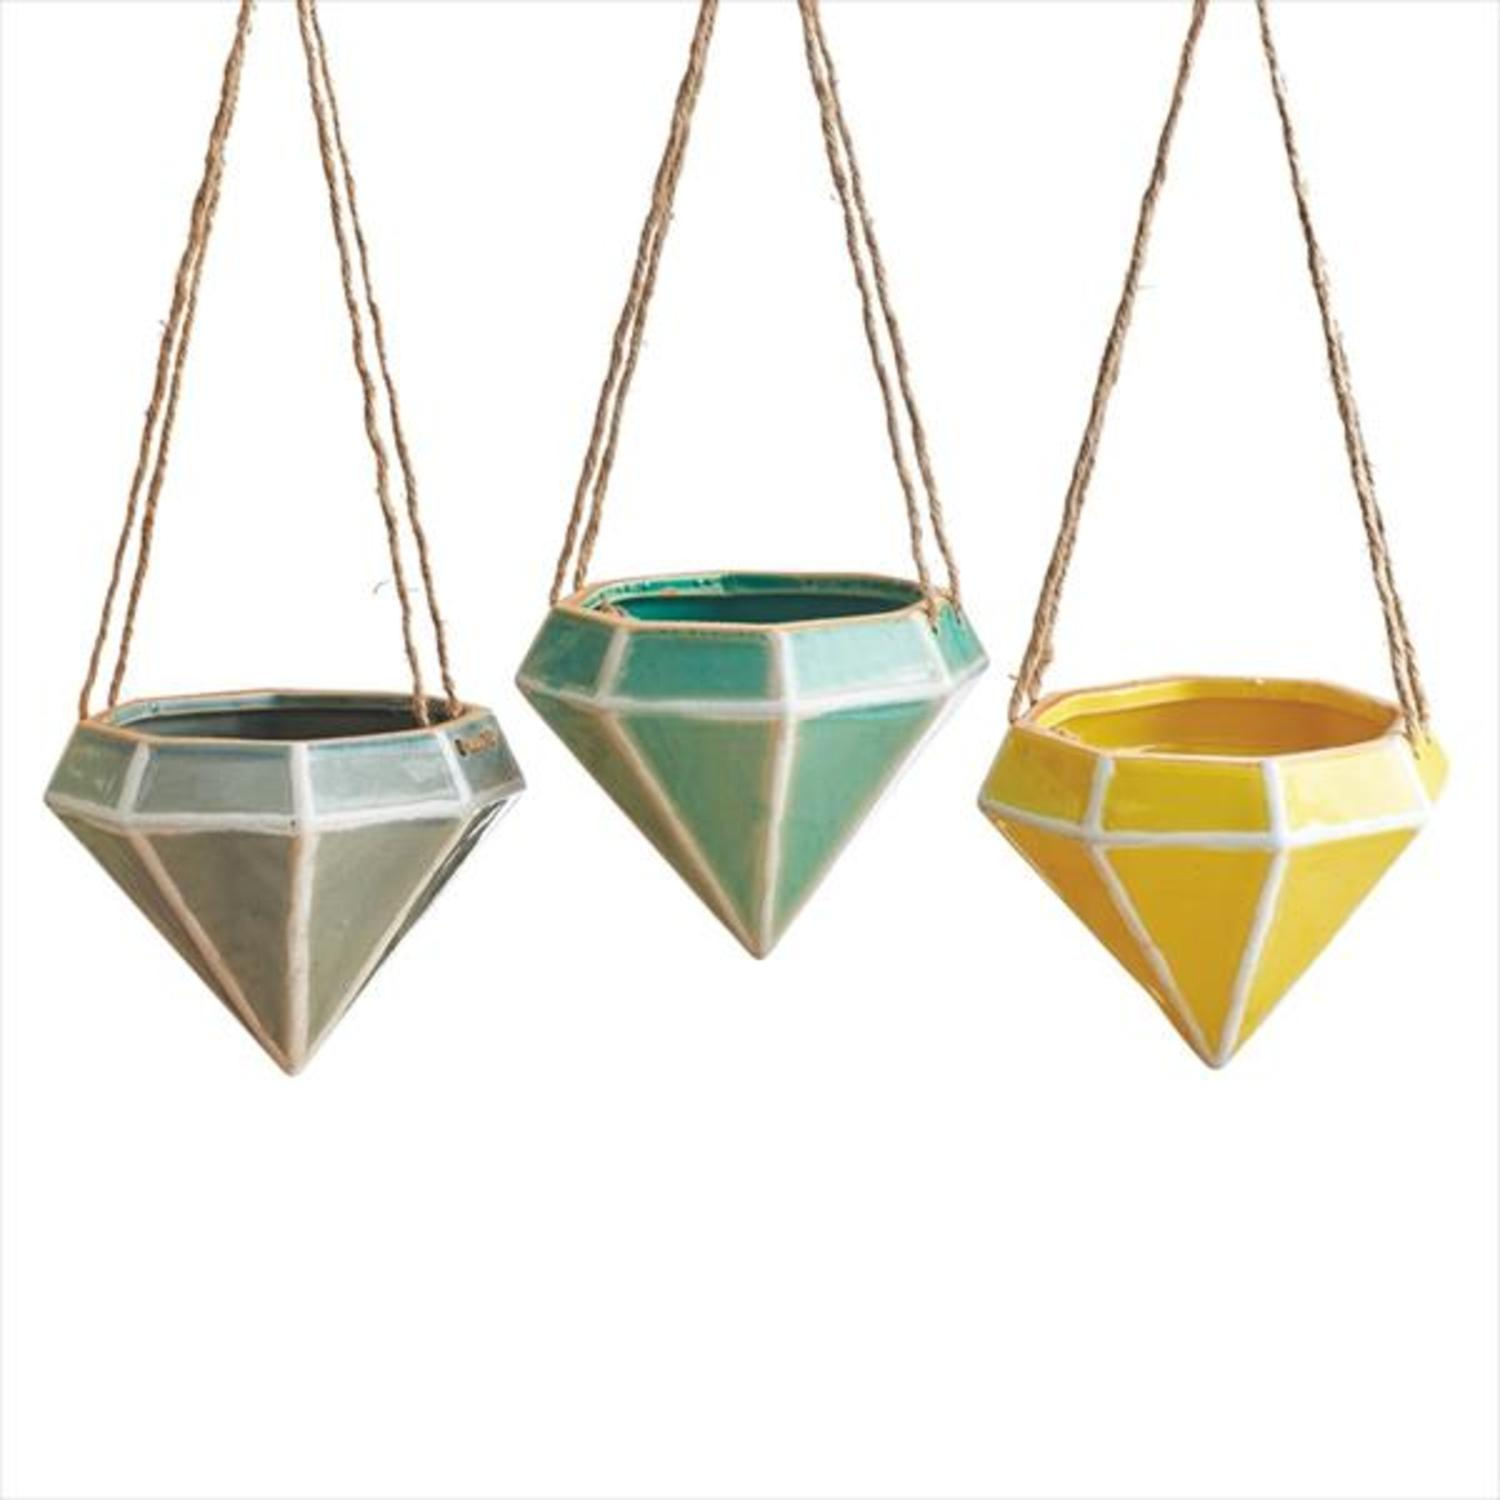 Pack of 6 Slate Gray, Seafoam Green and Lemon Yellow Ceramic Hanging Diamond Planters 5.75""